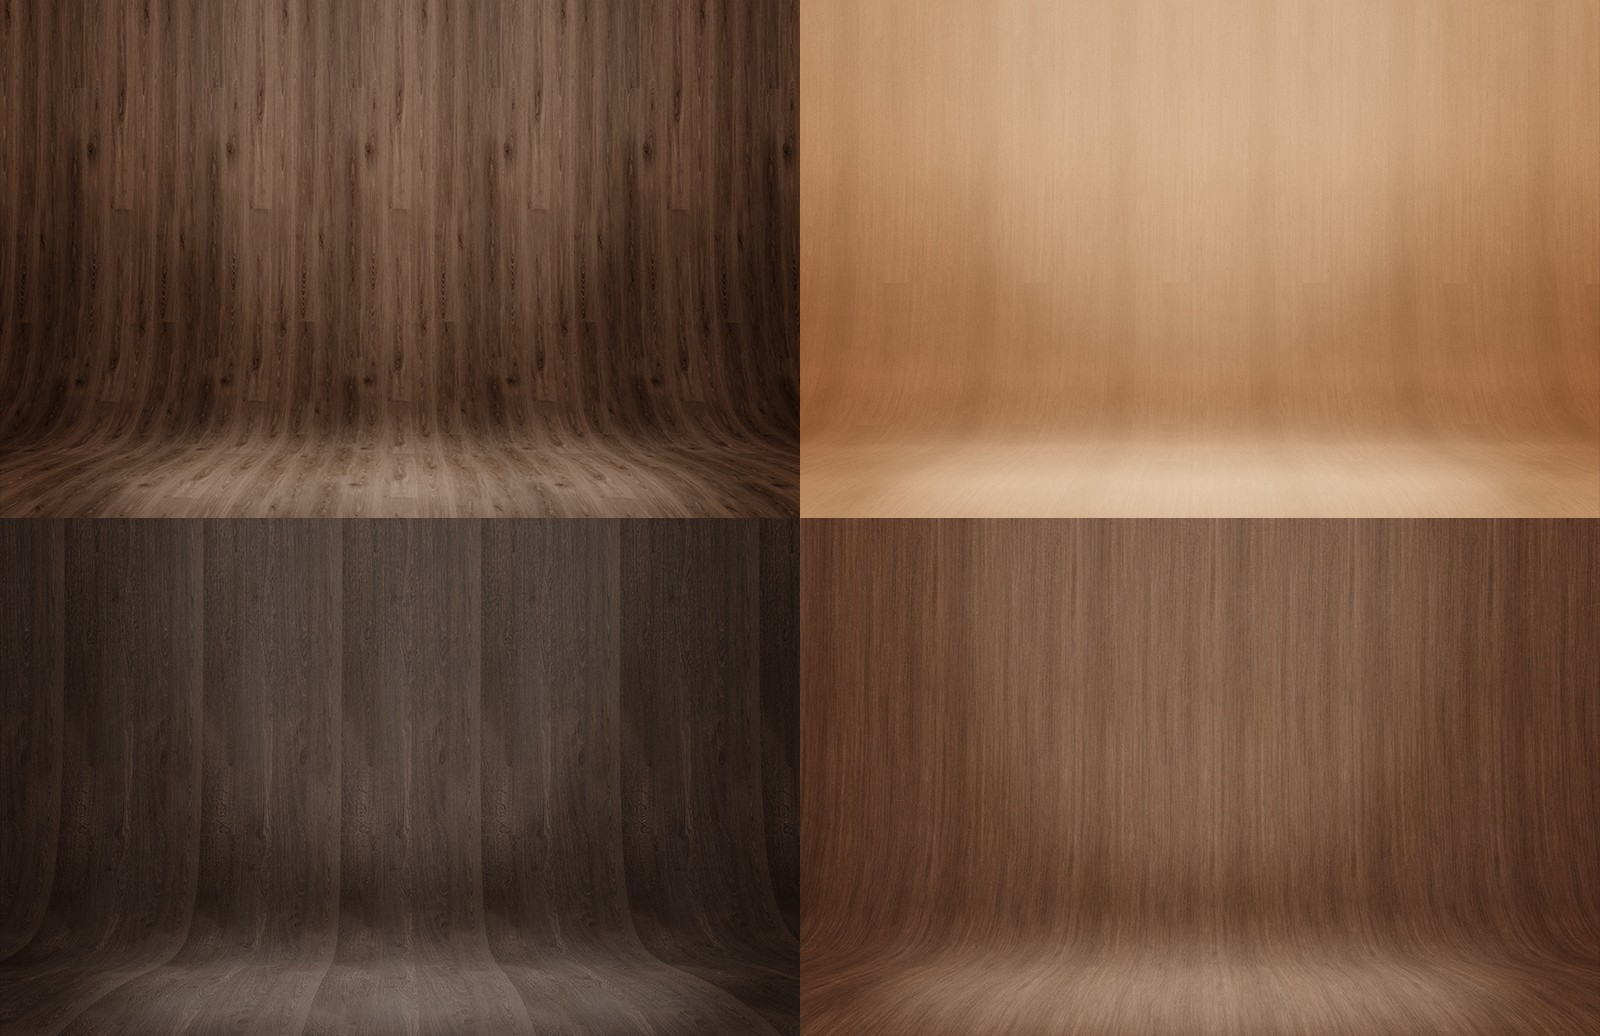 Curved Wood Presentation Backgrounds 2